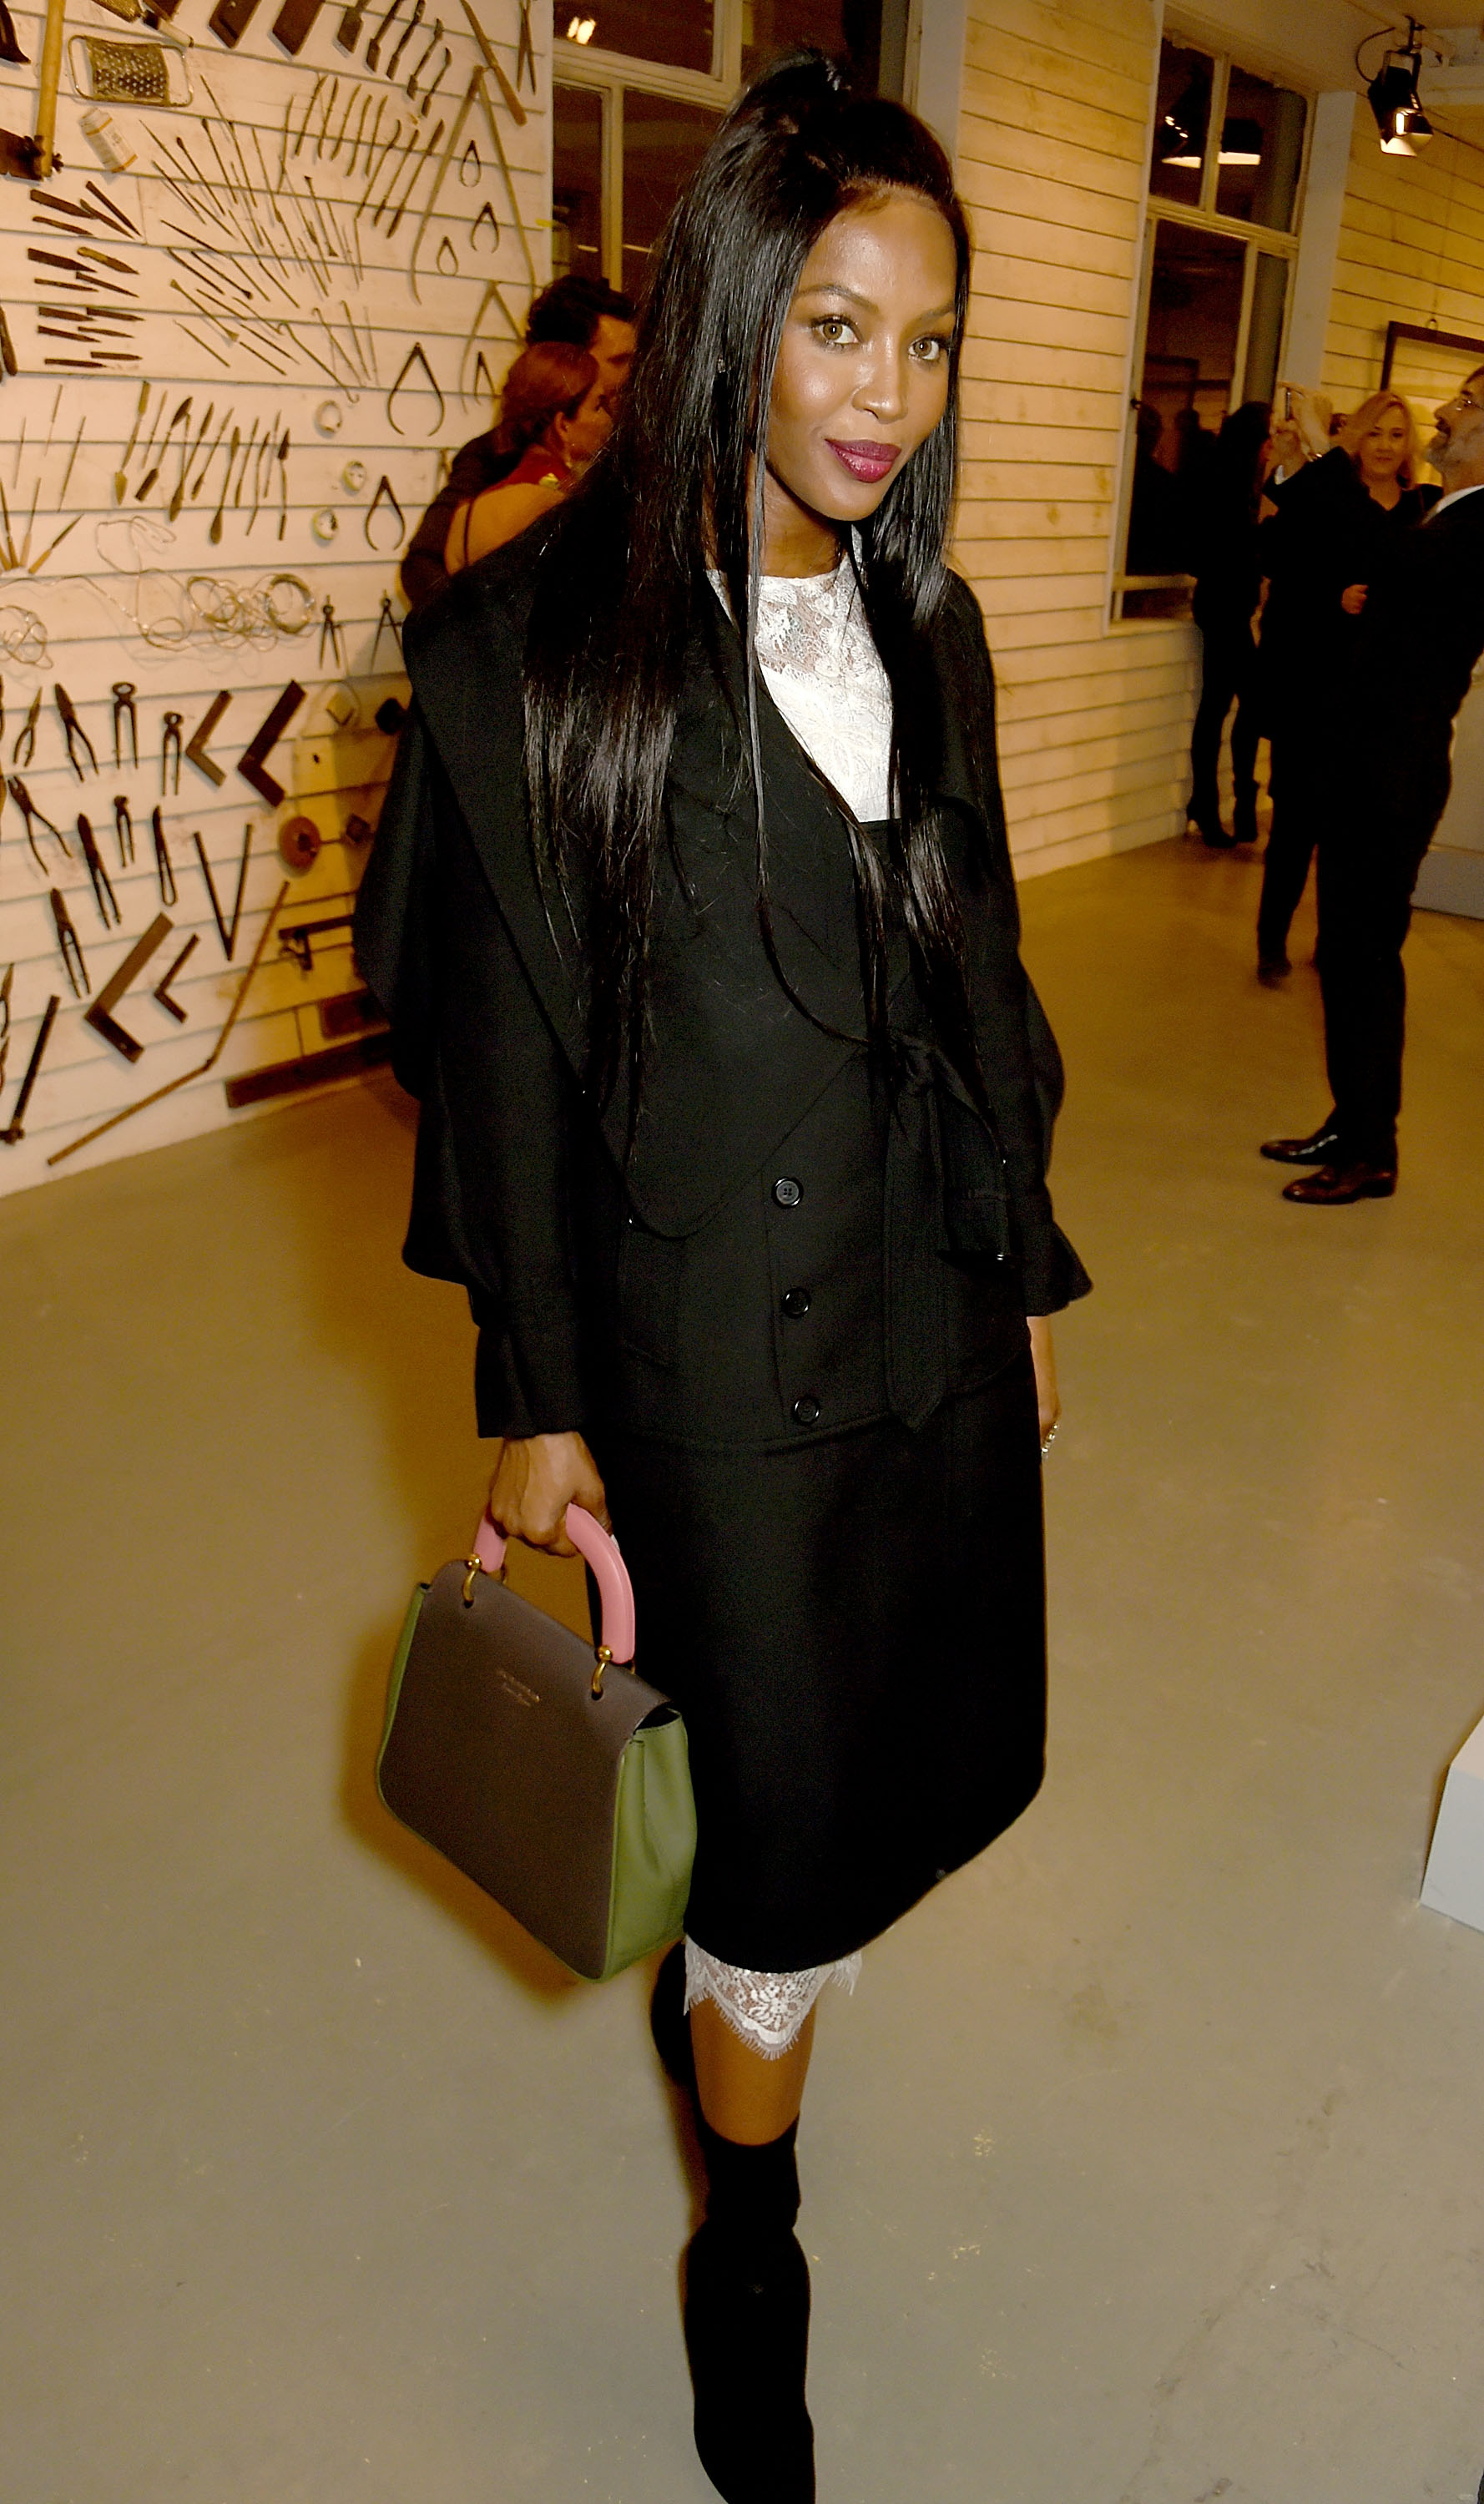 LONDON, ENGLAND - FEBRUARY 20:  Naomi Campbell wearing Burberry attend the Burberry February 2017 Show during London Fashion Week February 2017 at Makers House on February 20, 2017 in London, England.  (Photo by David M. Benett/Dave Benett/Getty Images for Burberry) *** Local Caption *** Naomi Campbell